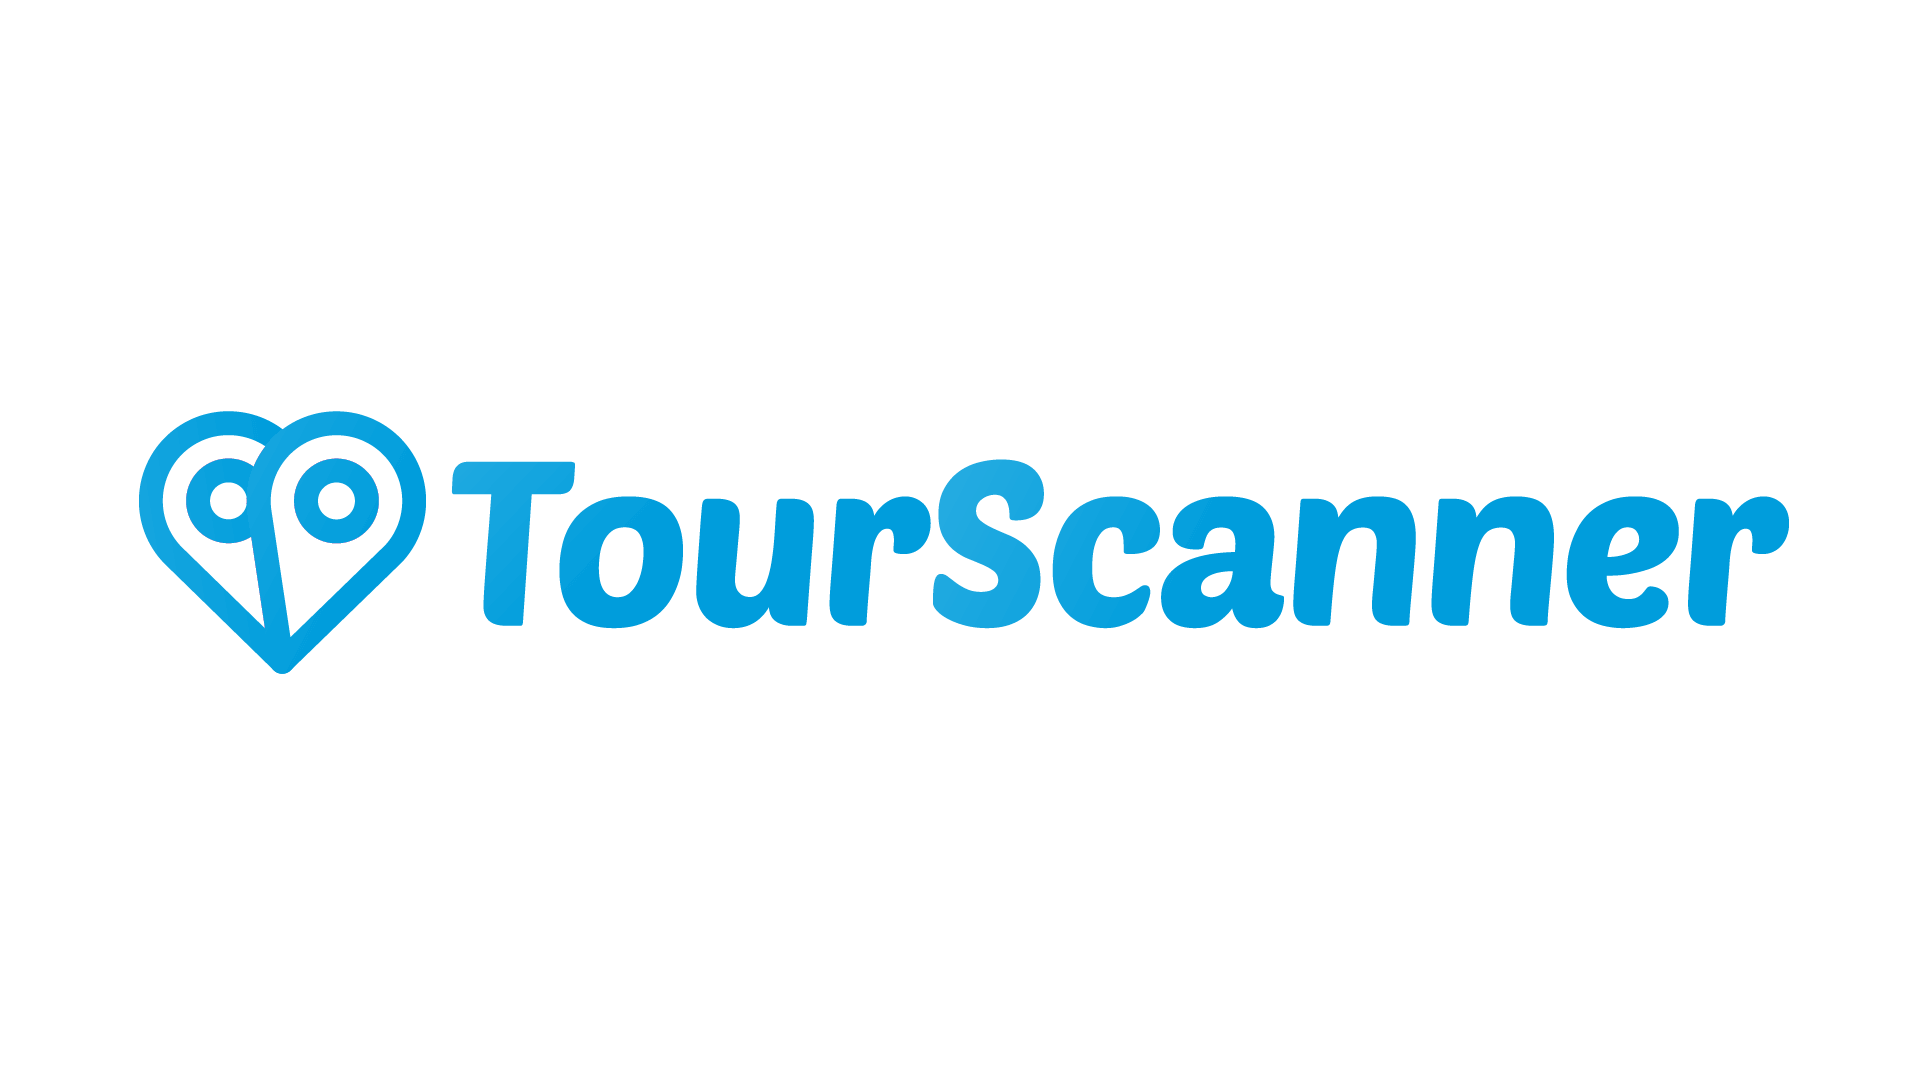 Tourscanner_full-01